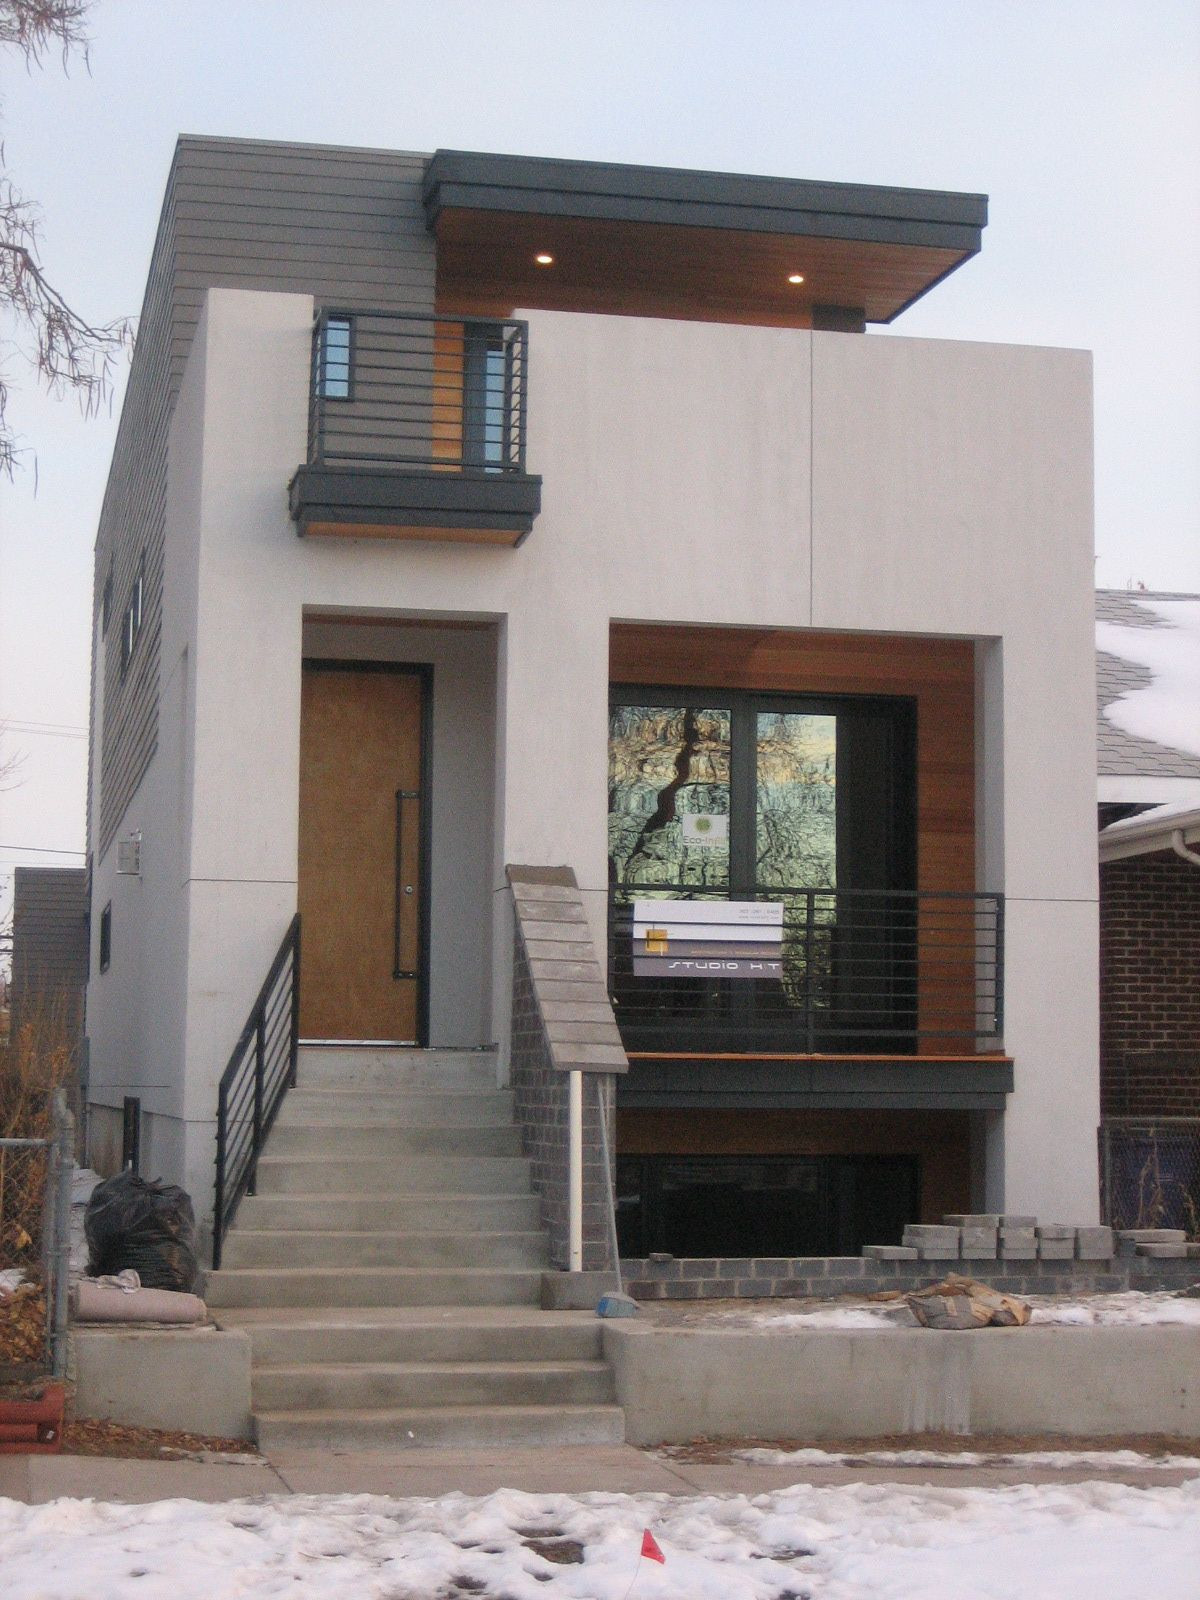 Exterior Design In Architecture Beautiful Architecture Inspiration Admirable Small House Types Plans